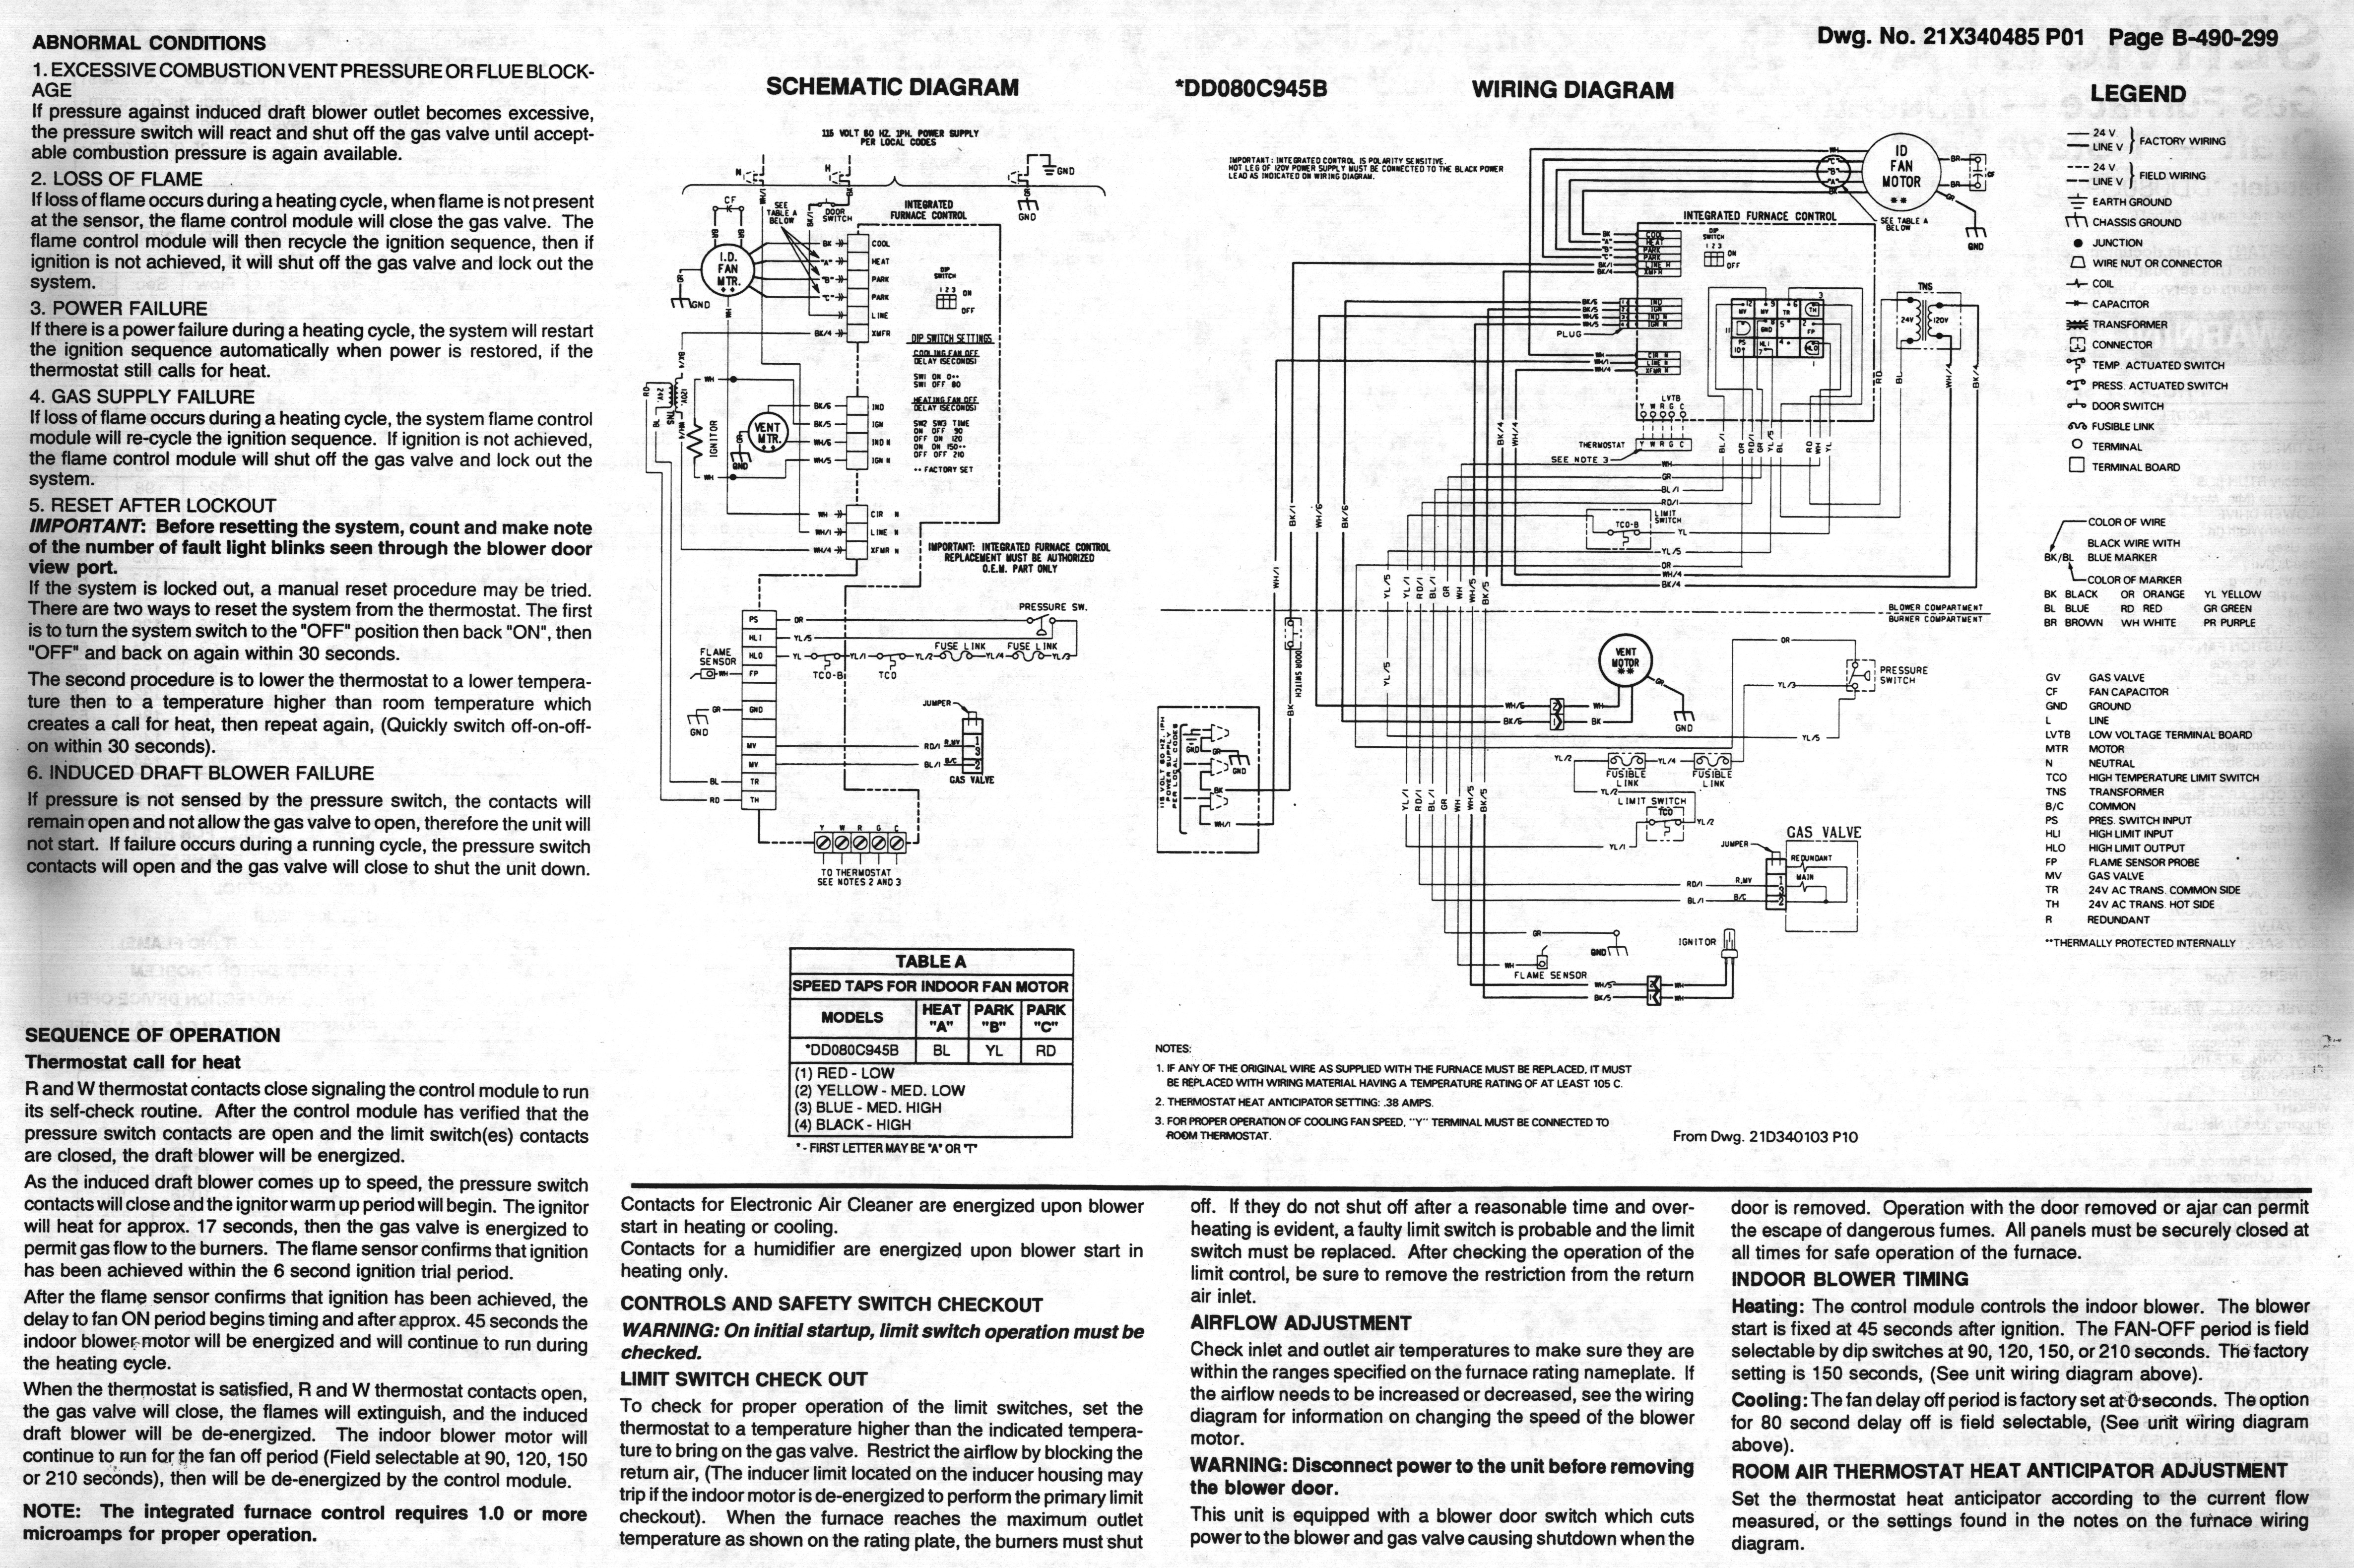 BH_3258] Trane Air Conditioner Wiring Diagram View Also Trane Furnace Wiring  Free Diagram | Hvac Wiring Diagram For Trane 1200 Xl |  | Unho Kapemie Mohammedshrine Librar Wiring 101